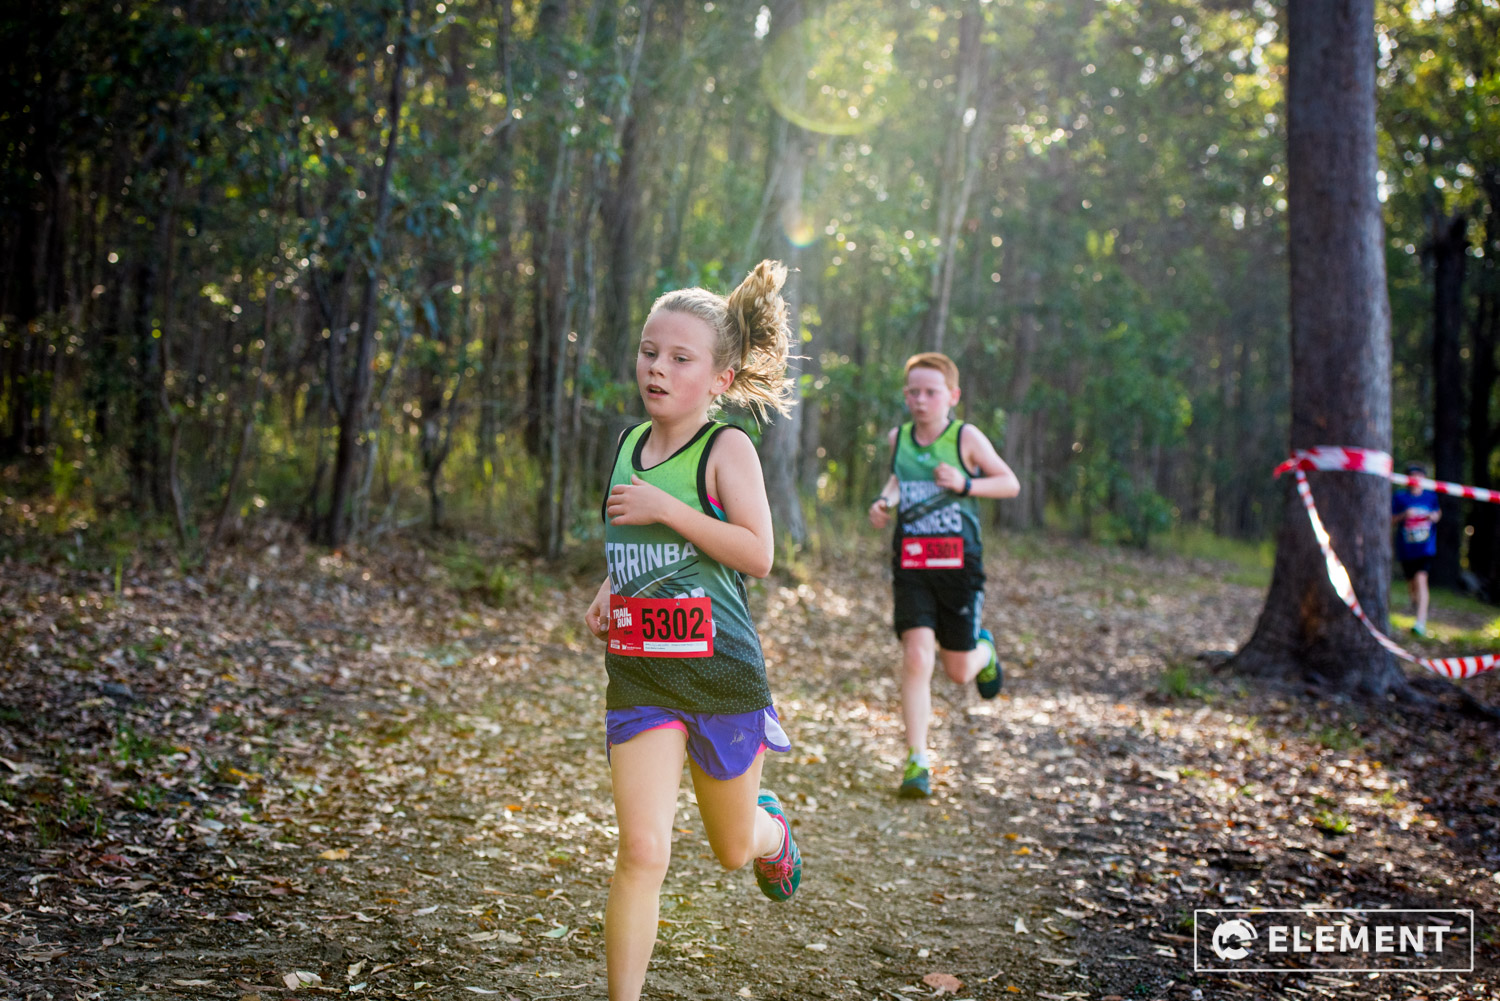 Photos from the Toohey Trail Run, 9-10-2016. Photos by Element.